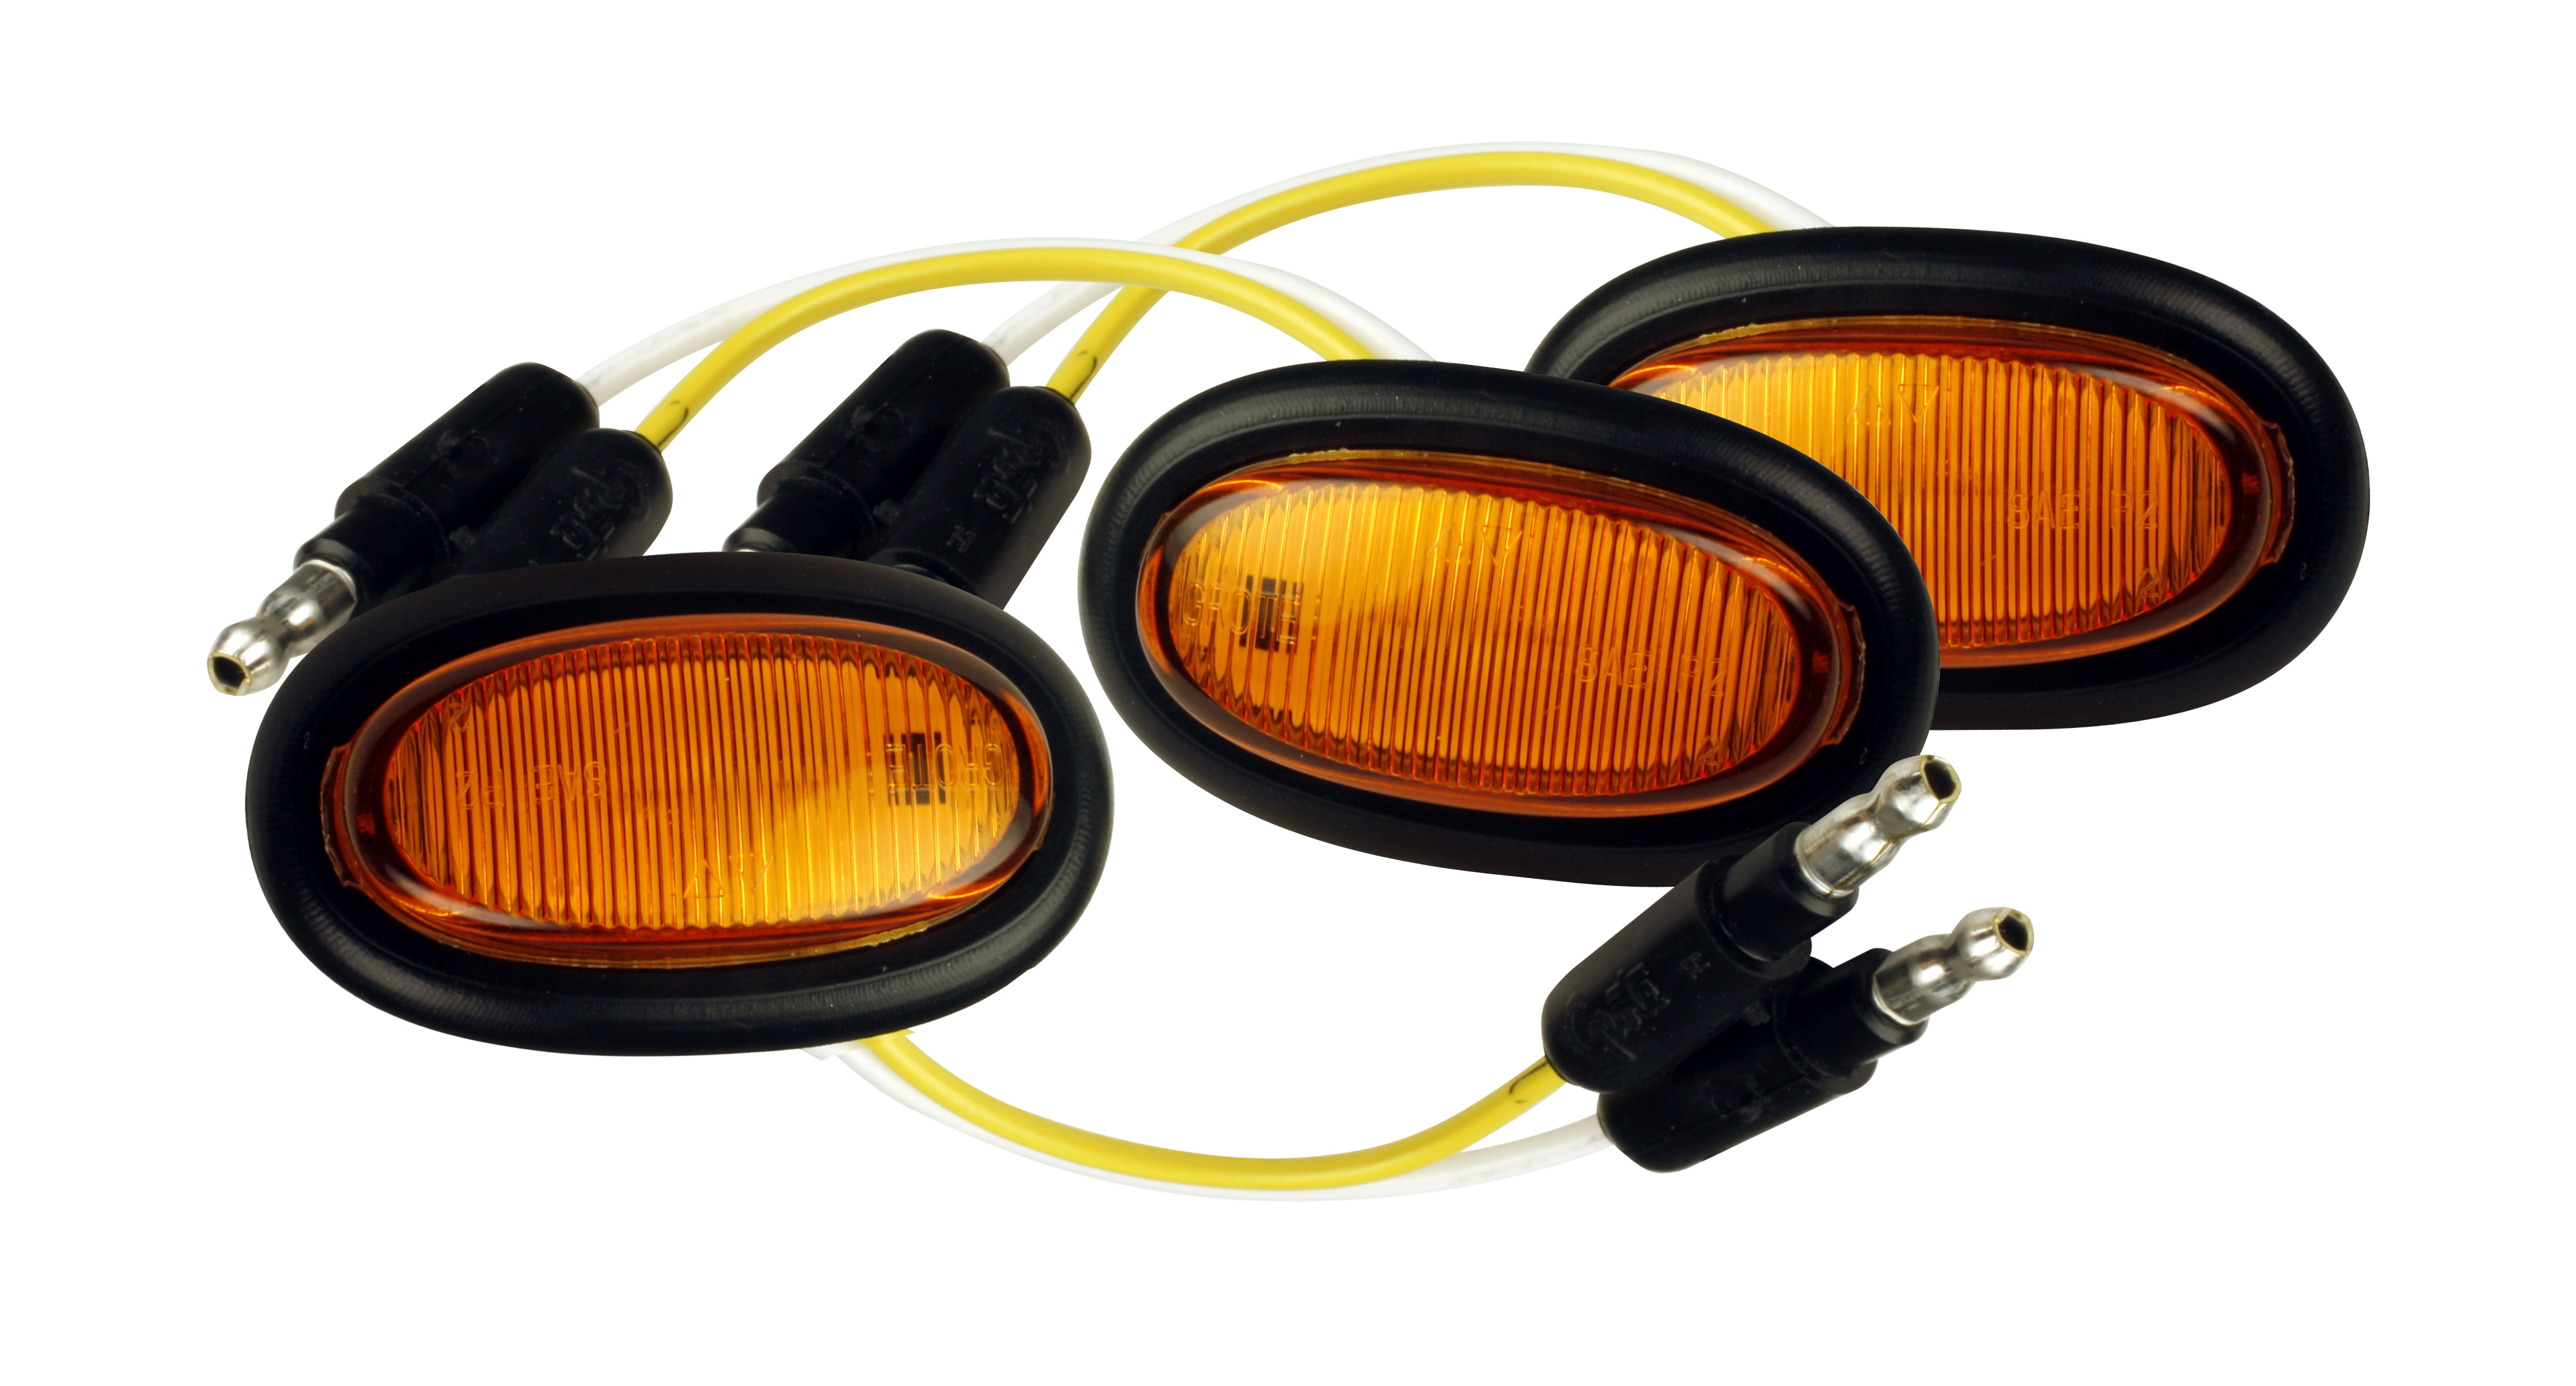 Grote Industries - 47963-3 – MicroNova® LED Clearance Marker Light, w/ Grommet, Yellow, Bulk Pack